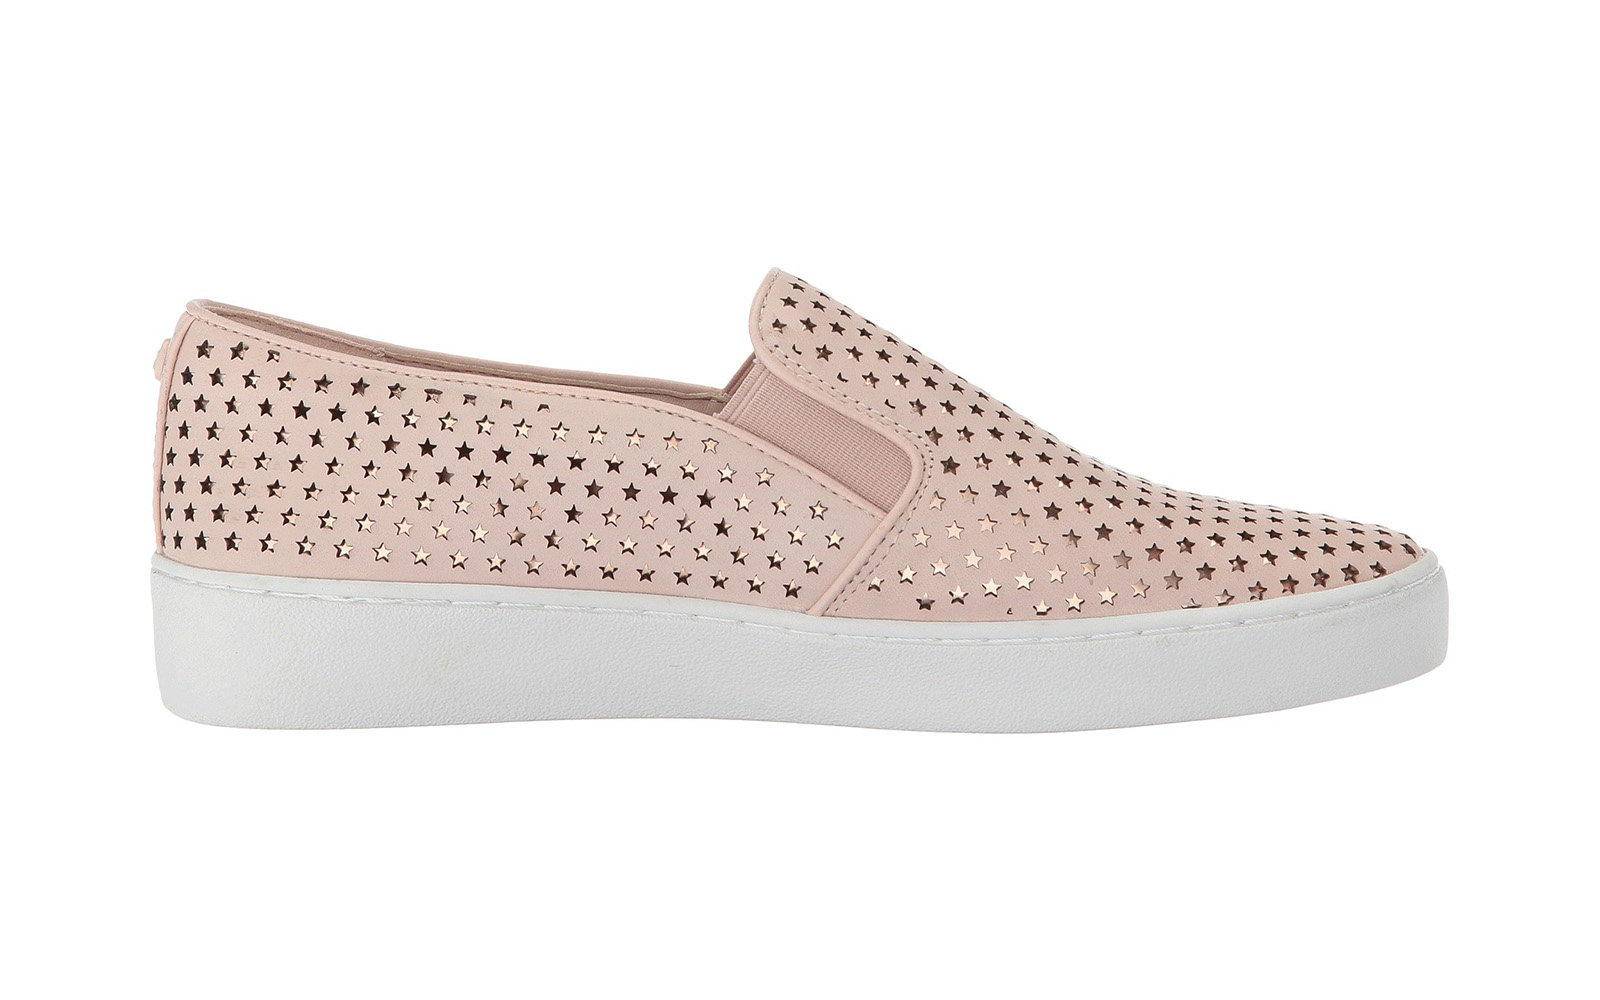 Best Slip-on Sneakers for Spring